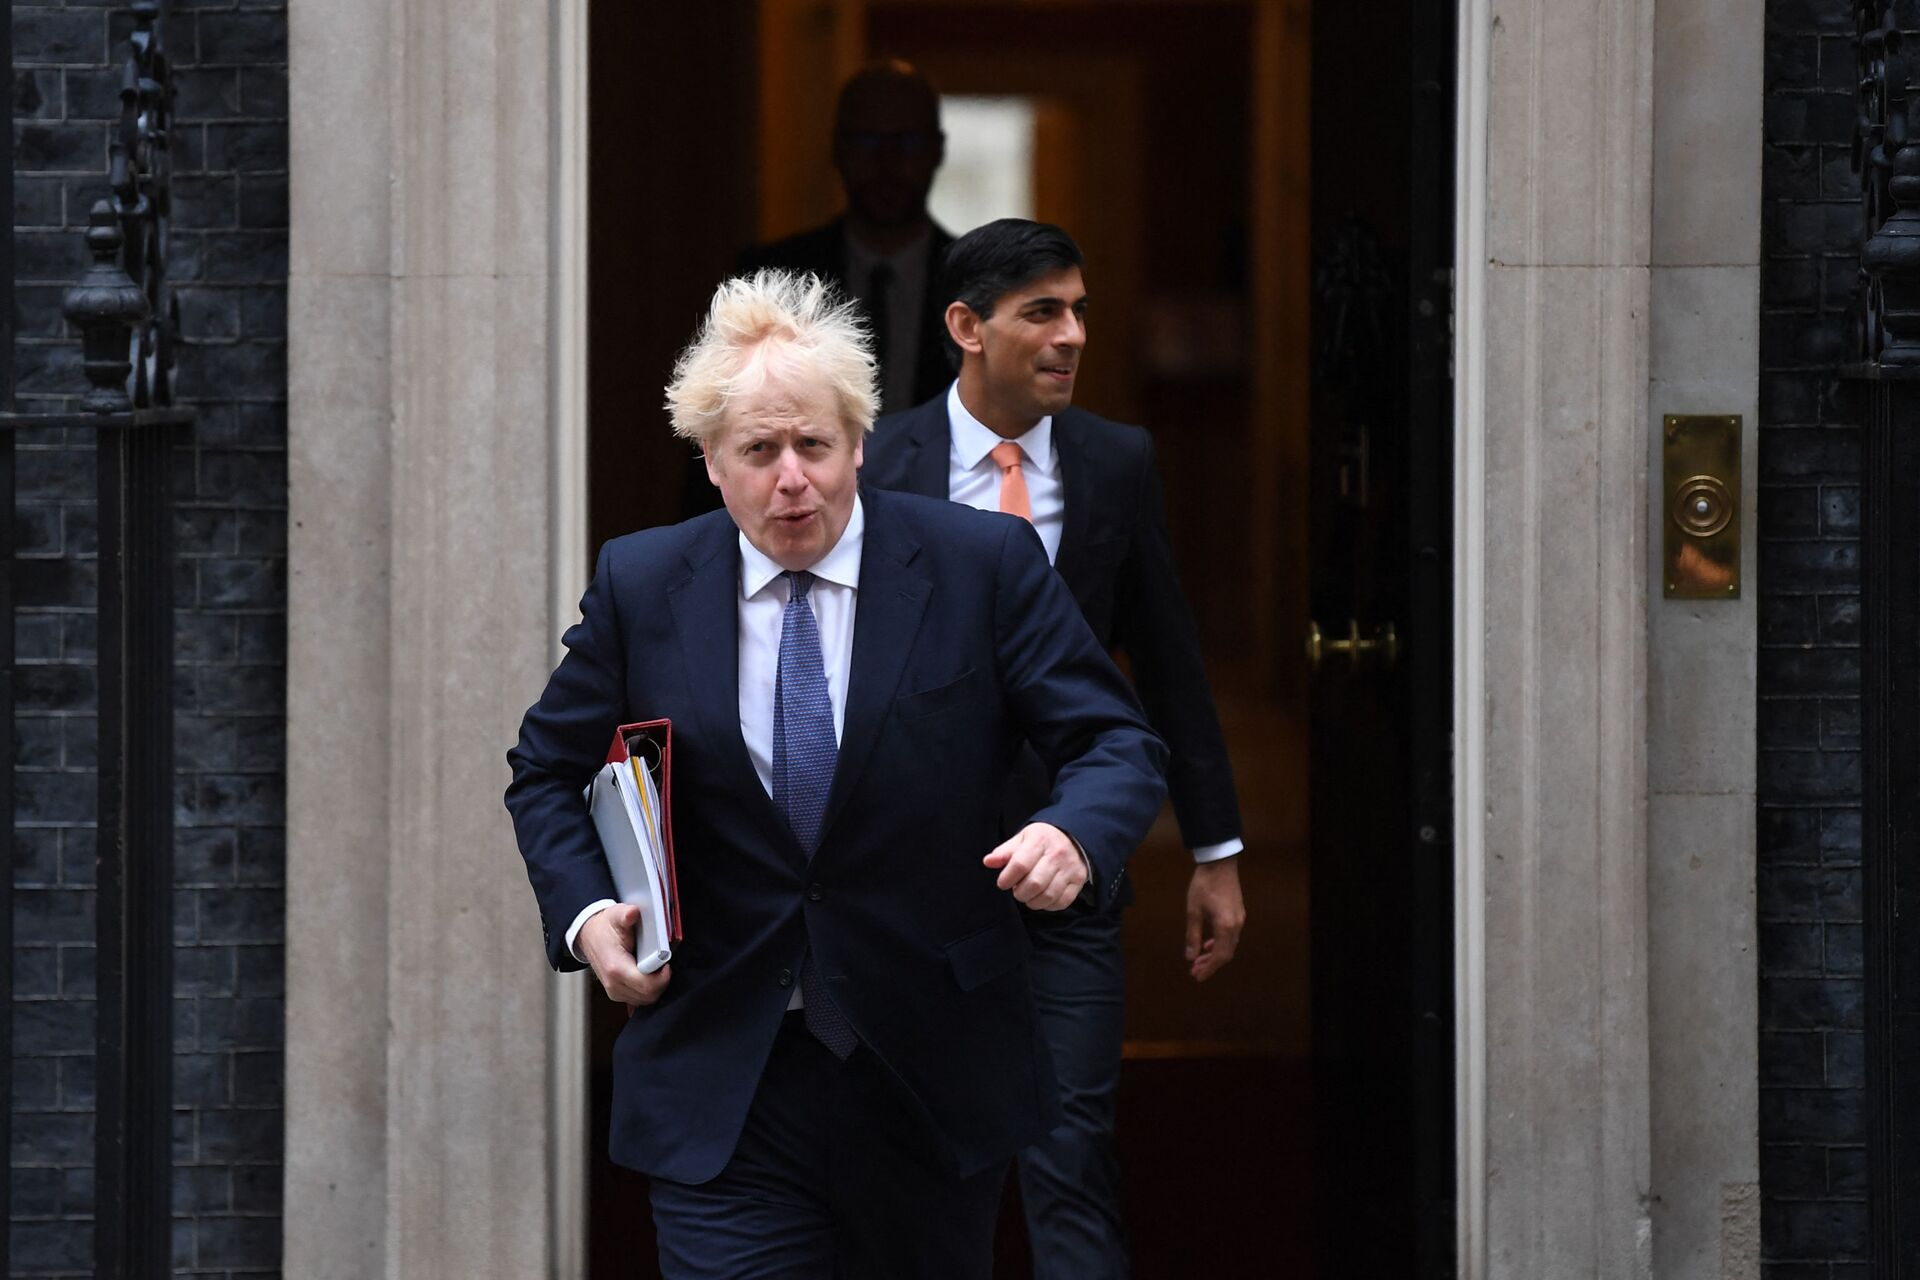 Britain's Prime Minister Boris Johnson (L) and Britain's Chancellor of the Exchequer Rishi Sunak (R) leave 10 Downing Street to attend the weekly cabinet meeting in London on October 13, 2020 held at the Foreign, Commonwealth and Development Office - Sputnik International, 1920, 15.09.2021